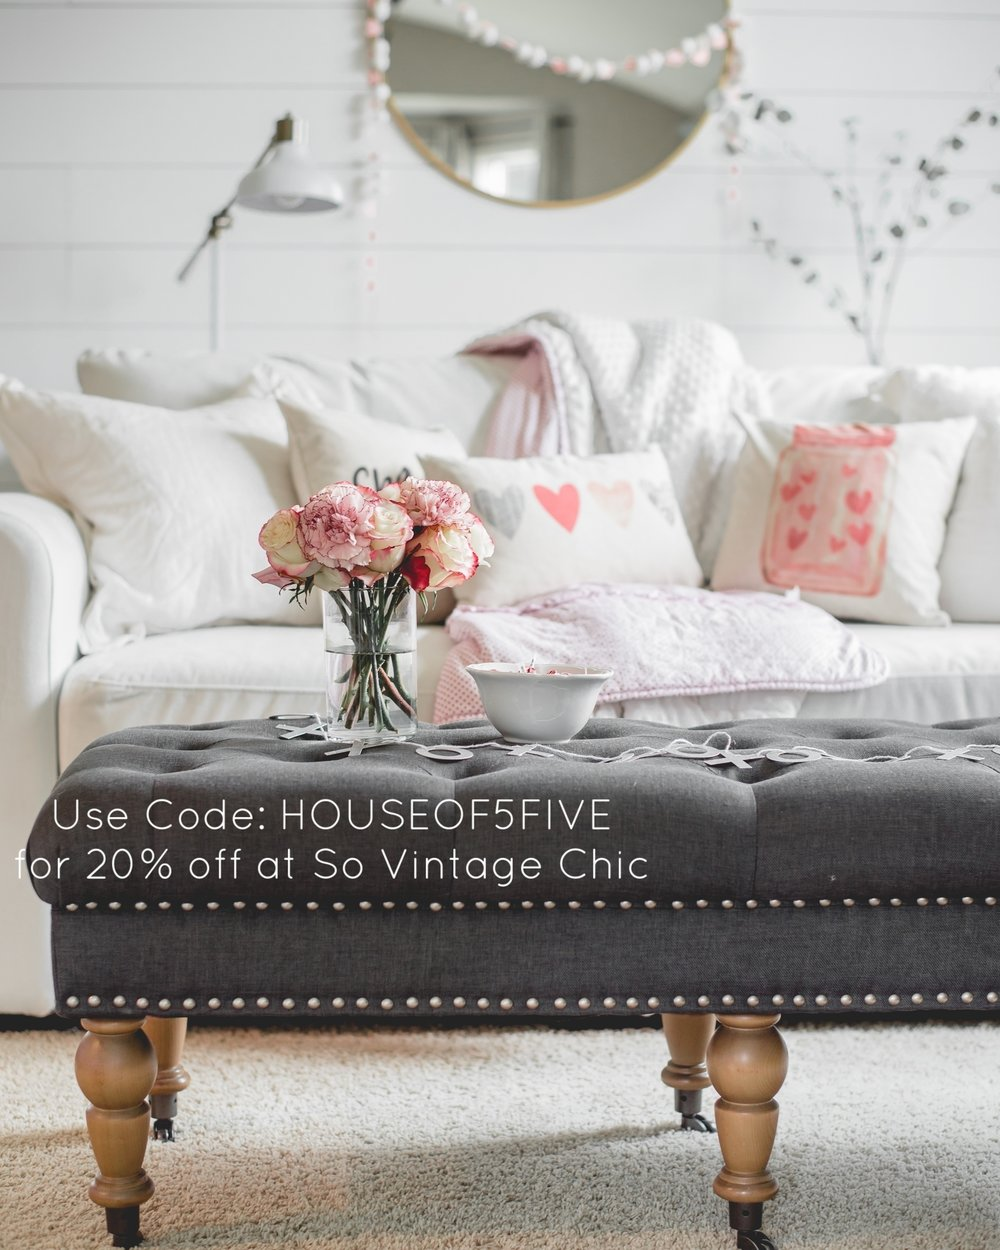 So Vintage Chic Discount